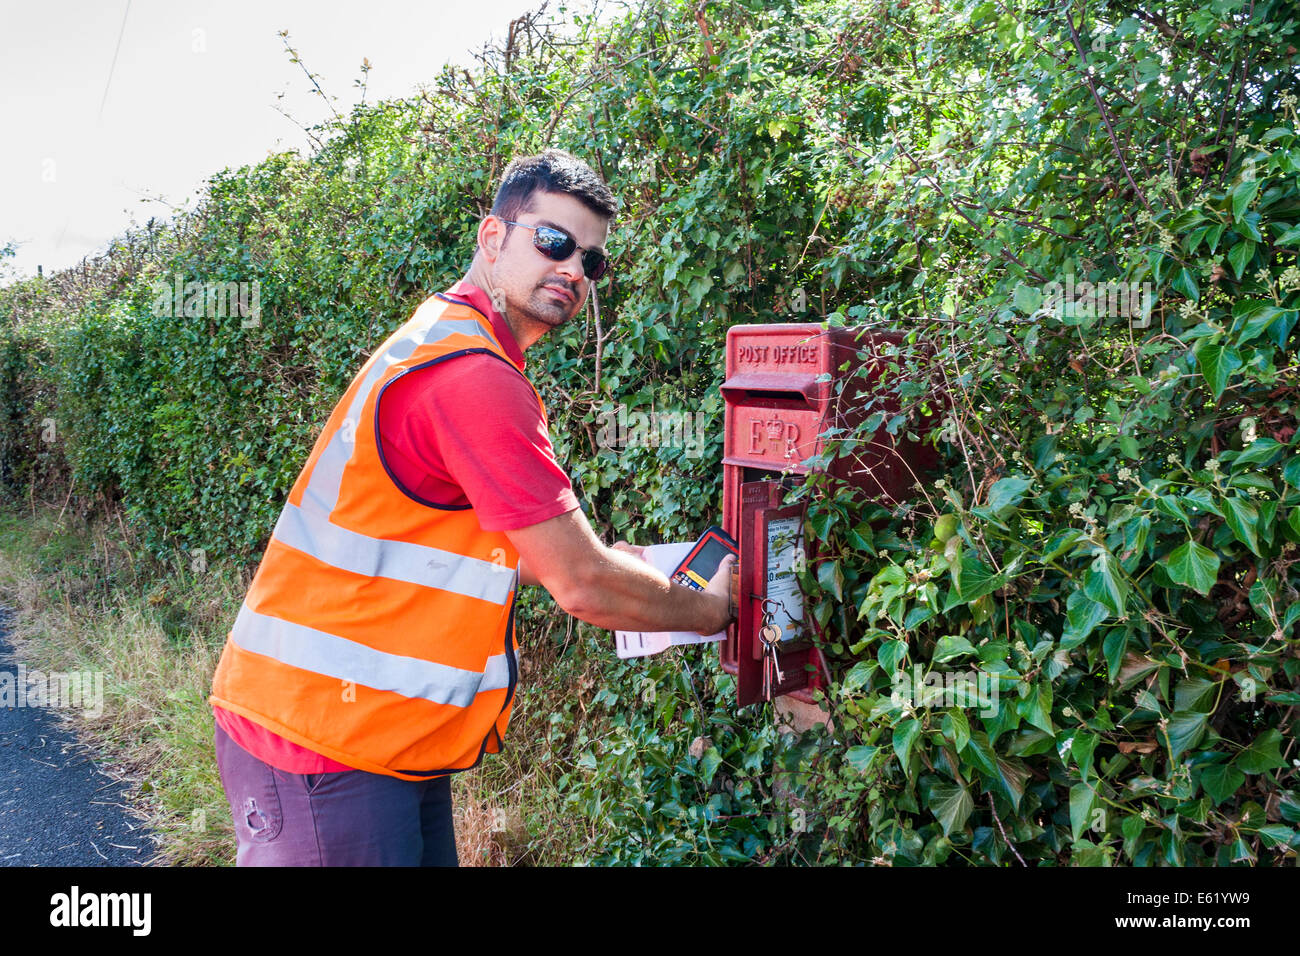 Royal Mail postman collects mail from rural pillar box - Stock Image